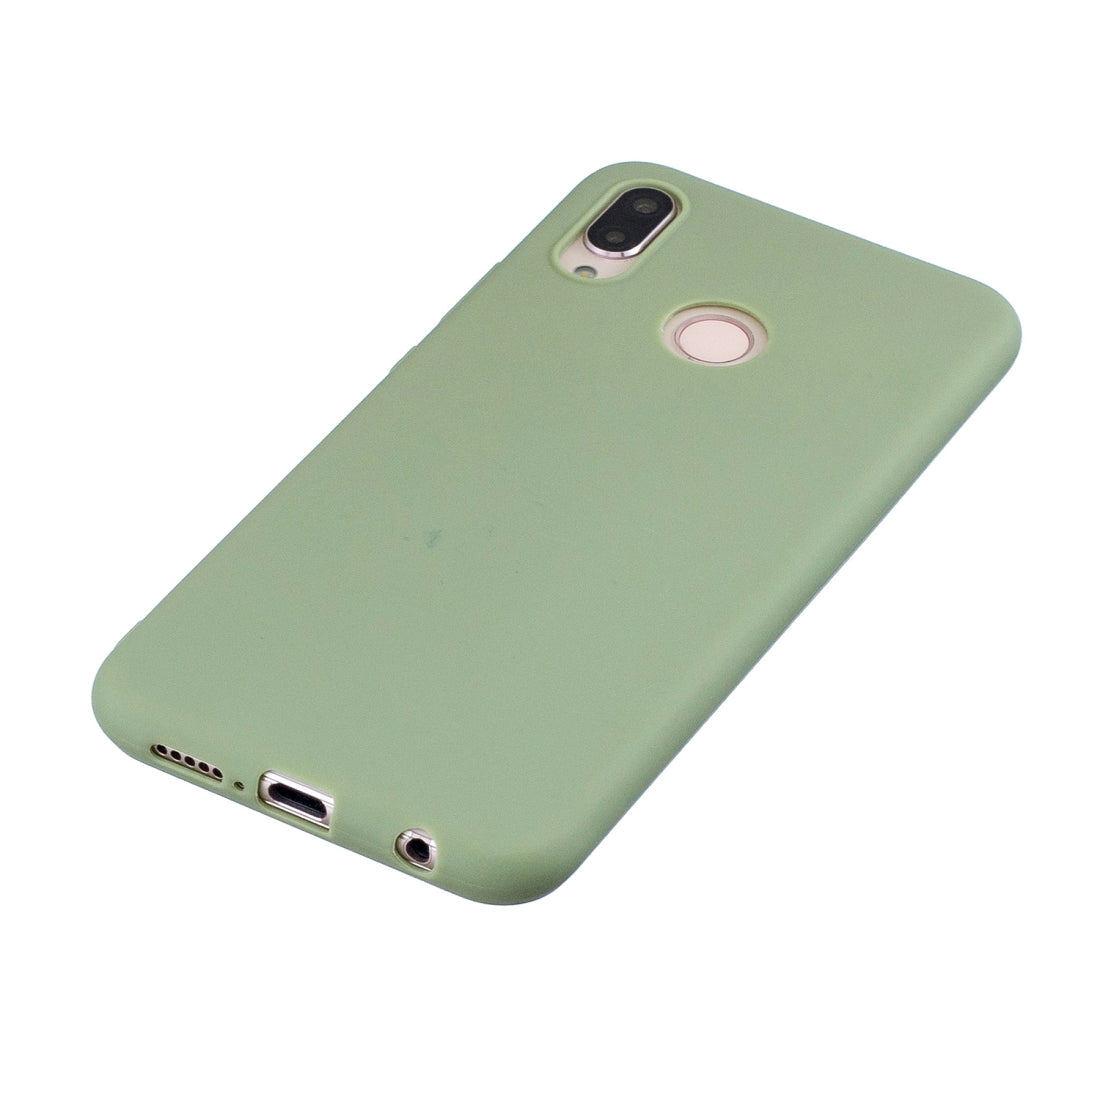 Frosted Solid Color TPU Protective Case for Huawei P20 Lite/Nova 3E(Bean green)